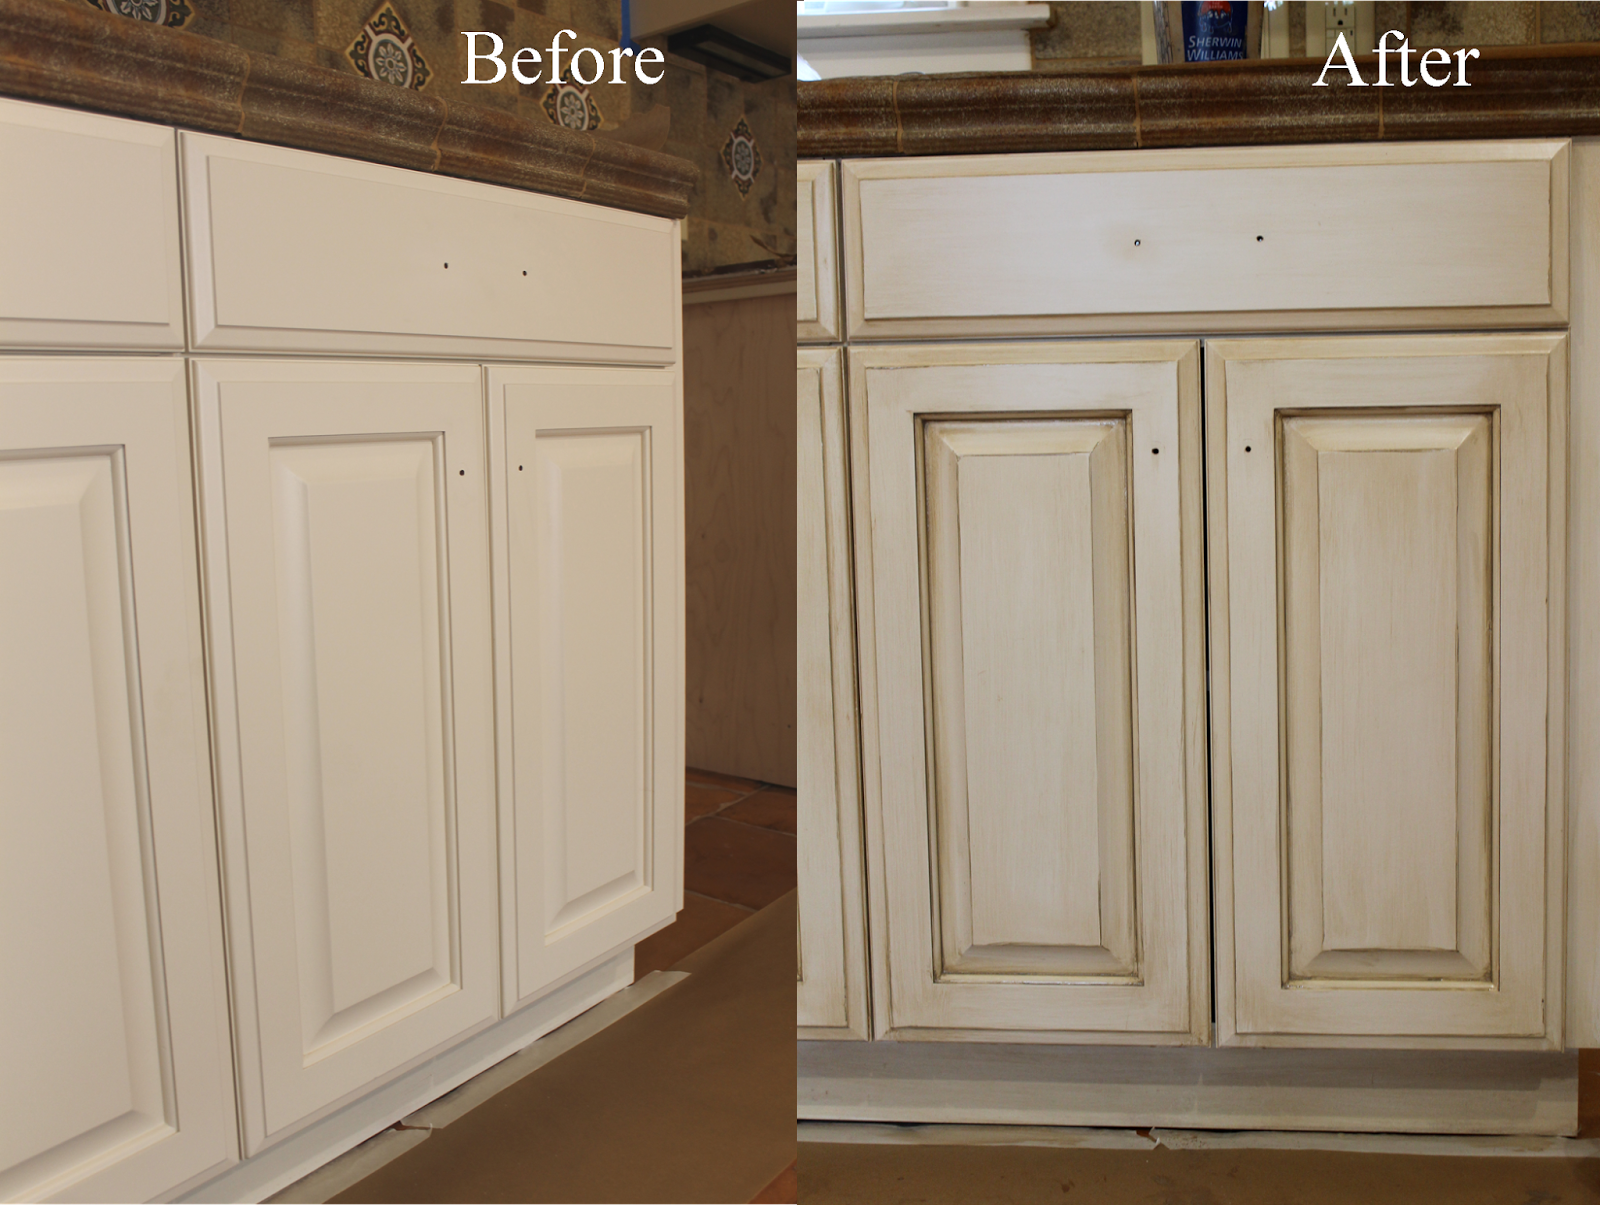 Before and after Glazing antiquing cabinets A plete how to